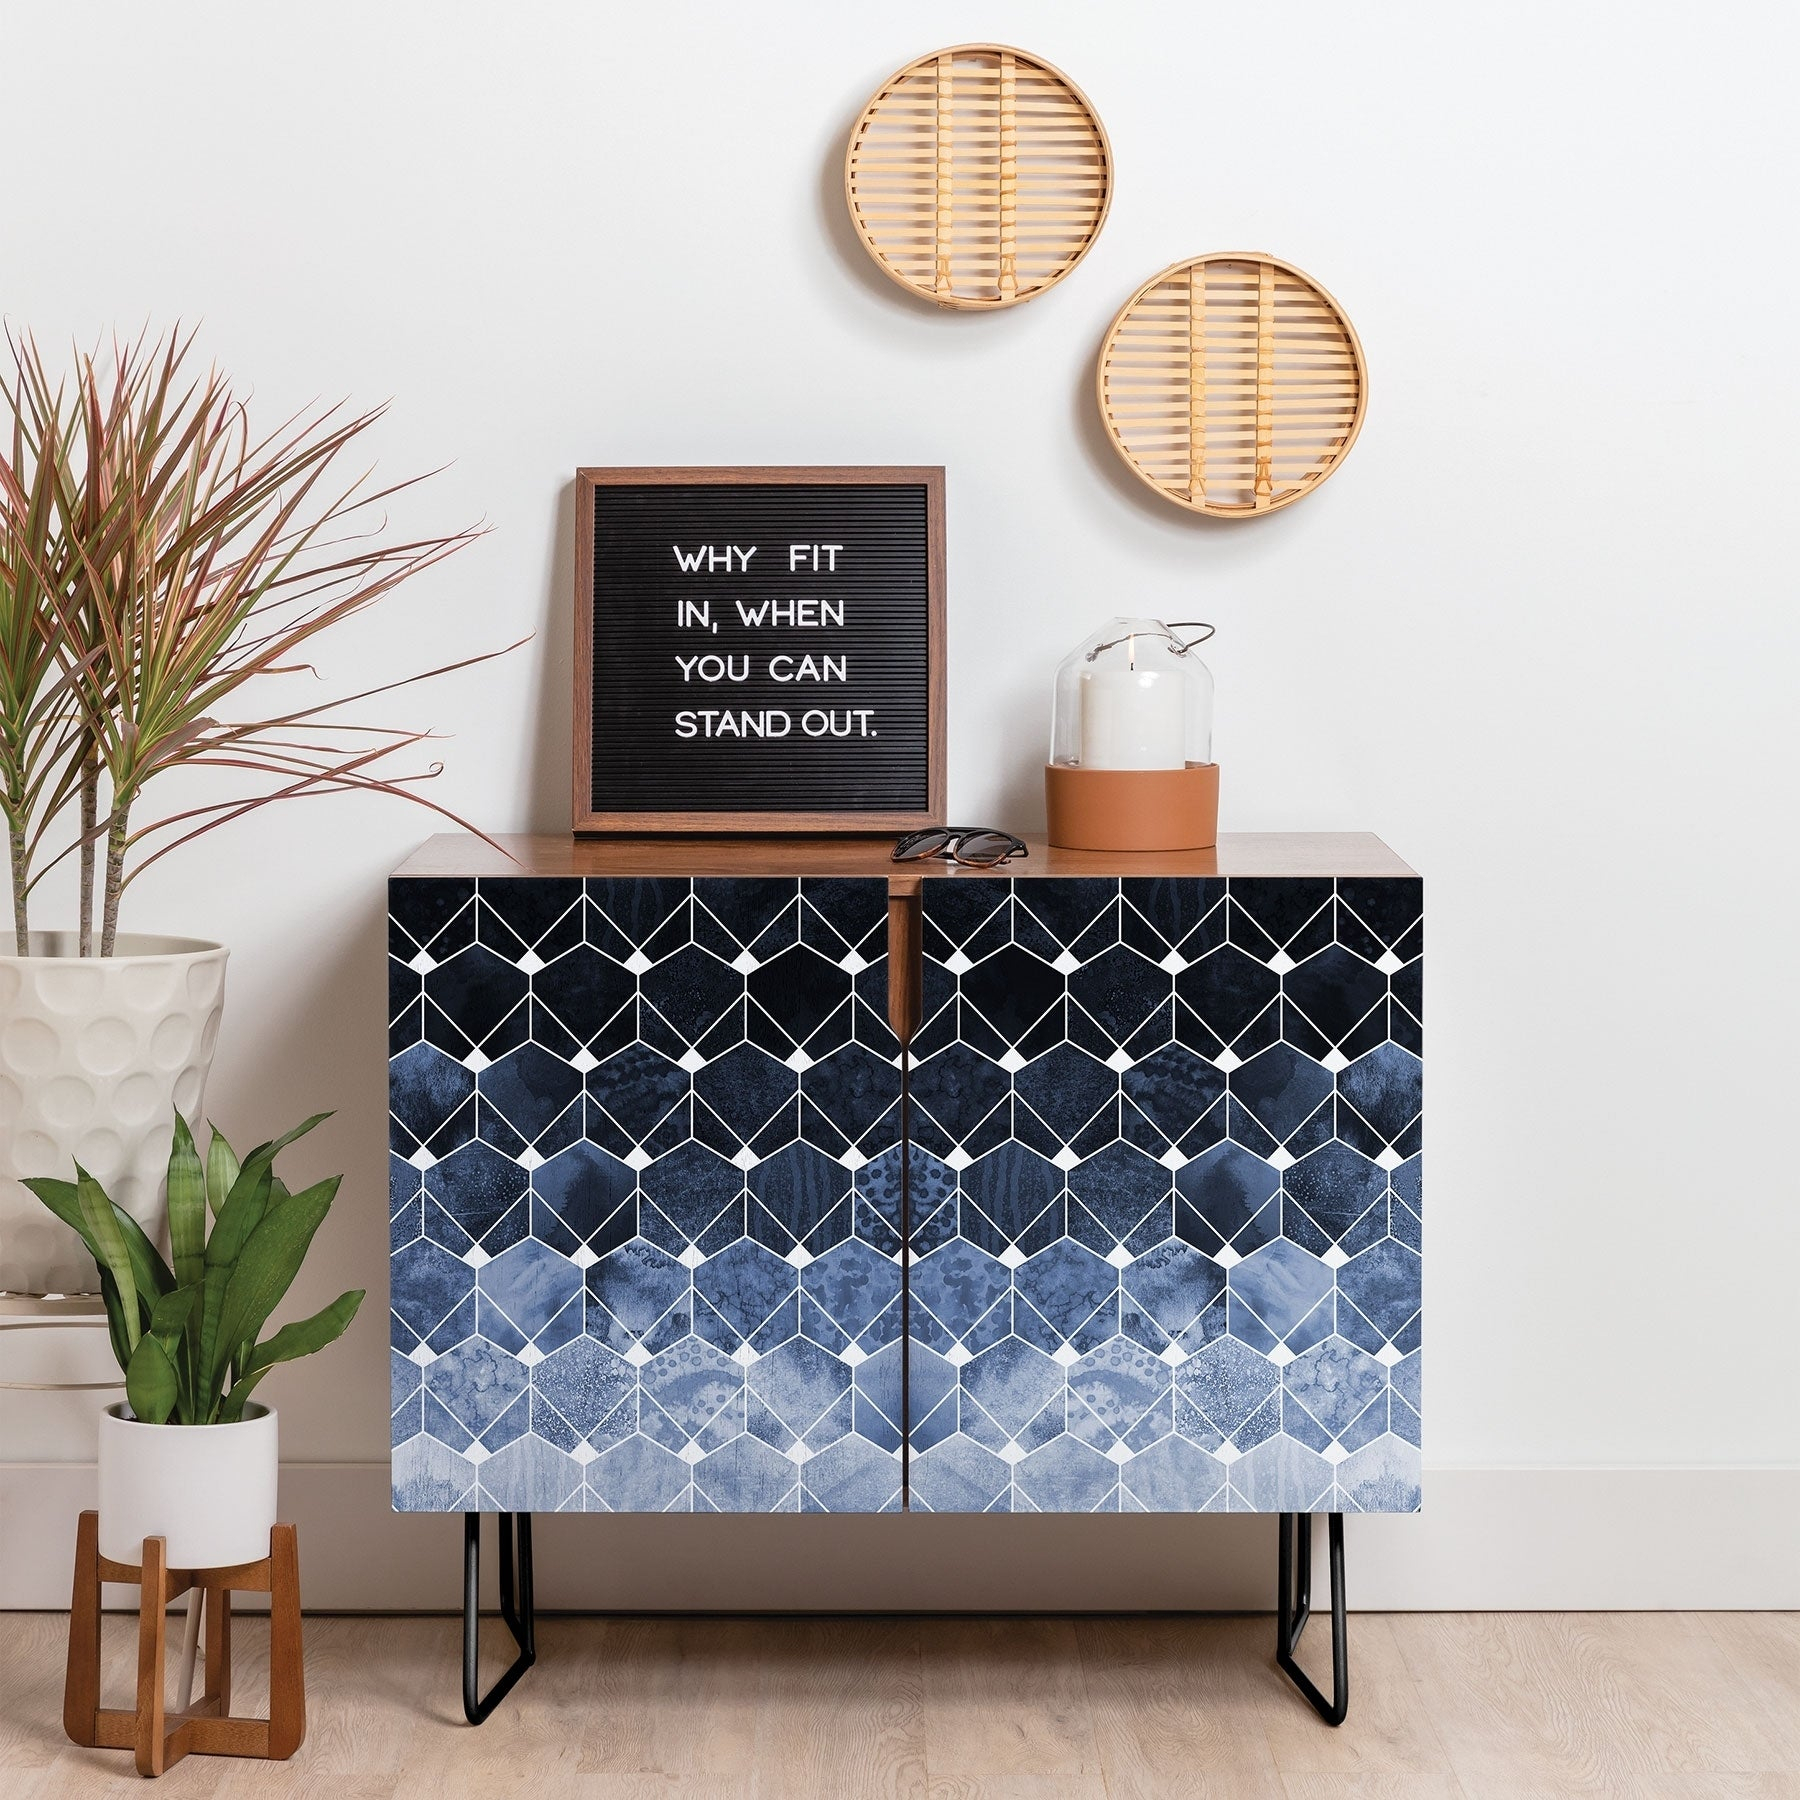 Deny Designs Blue Hexagons And Diamonds Credenza (Birch Or Walnut, 2 Leg Options) Pertaining To Line Geo Credenzas (Gallery 7 of 30)